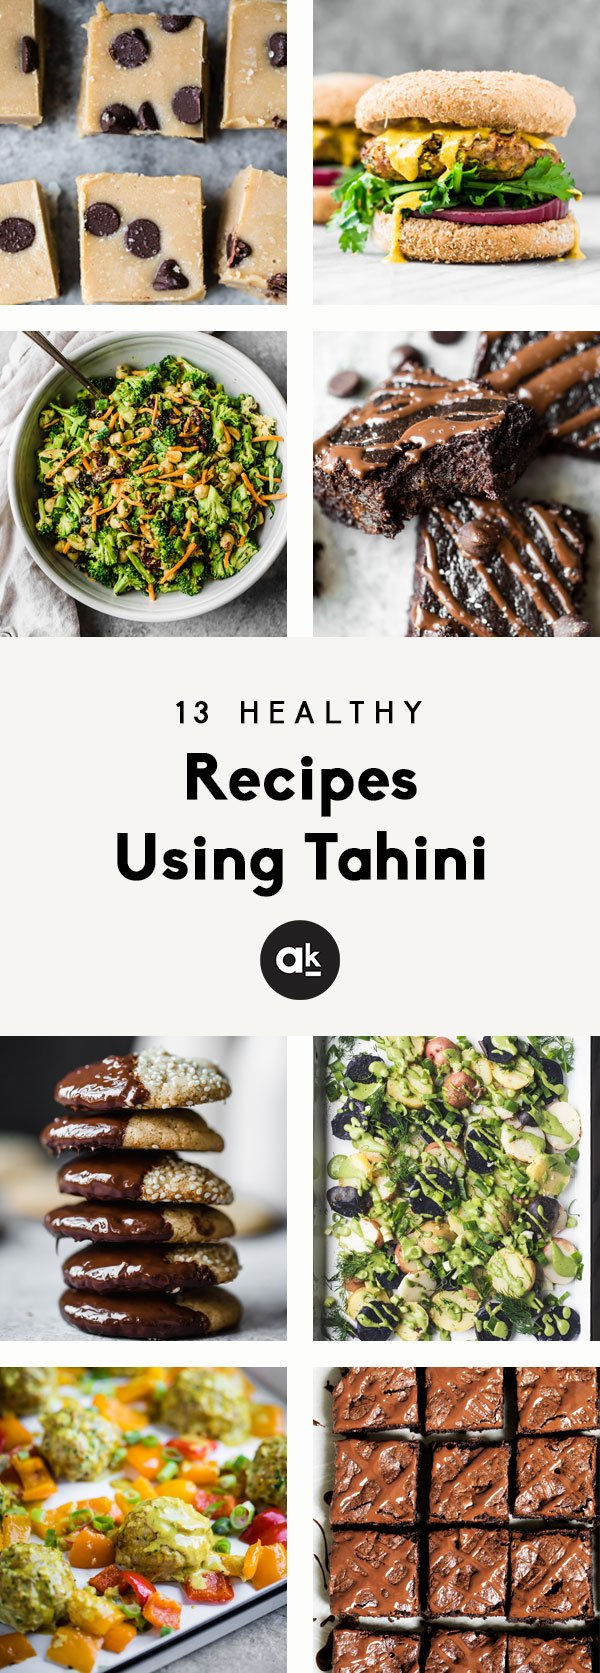 From sweet treats to delicious meal prep ideas, these will be your new favorite recipes using tahini! With plenty of vegan and nut-free options, these recipes are perfect for feeding a crowd.